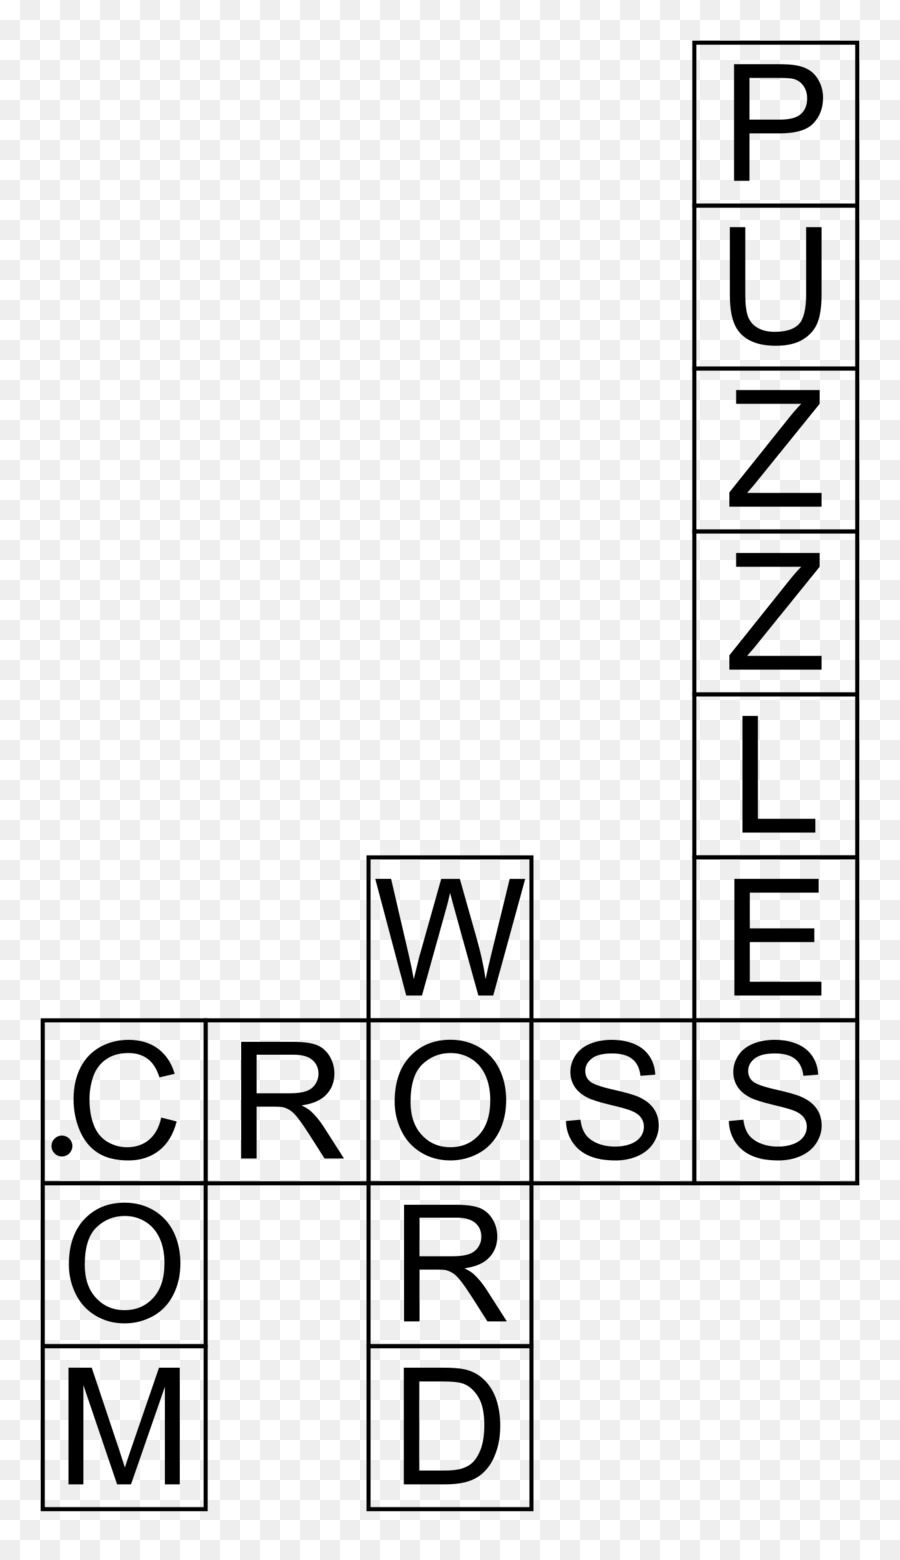 Download crossword clip art clipart Crossword Puzzle Clip art.